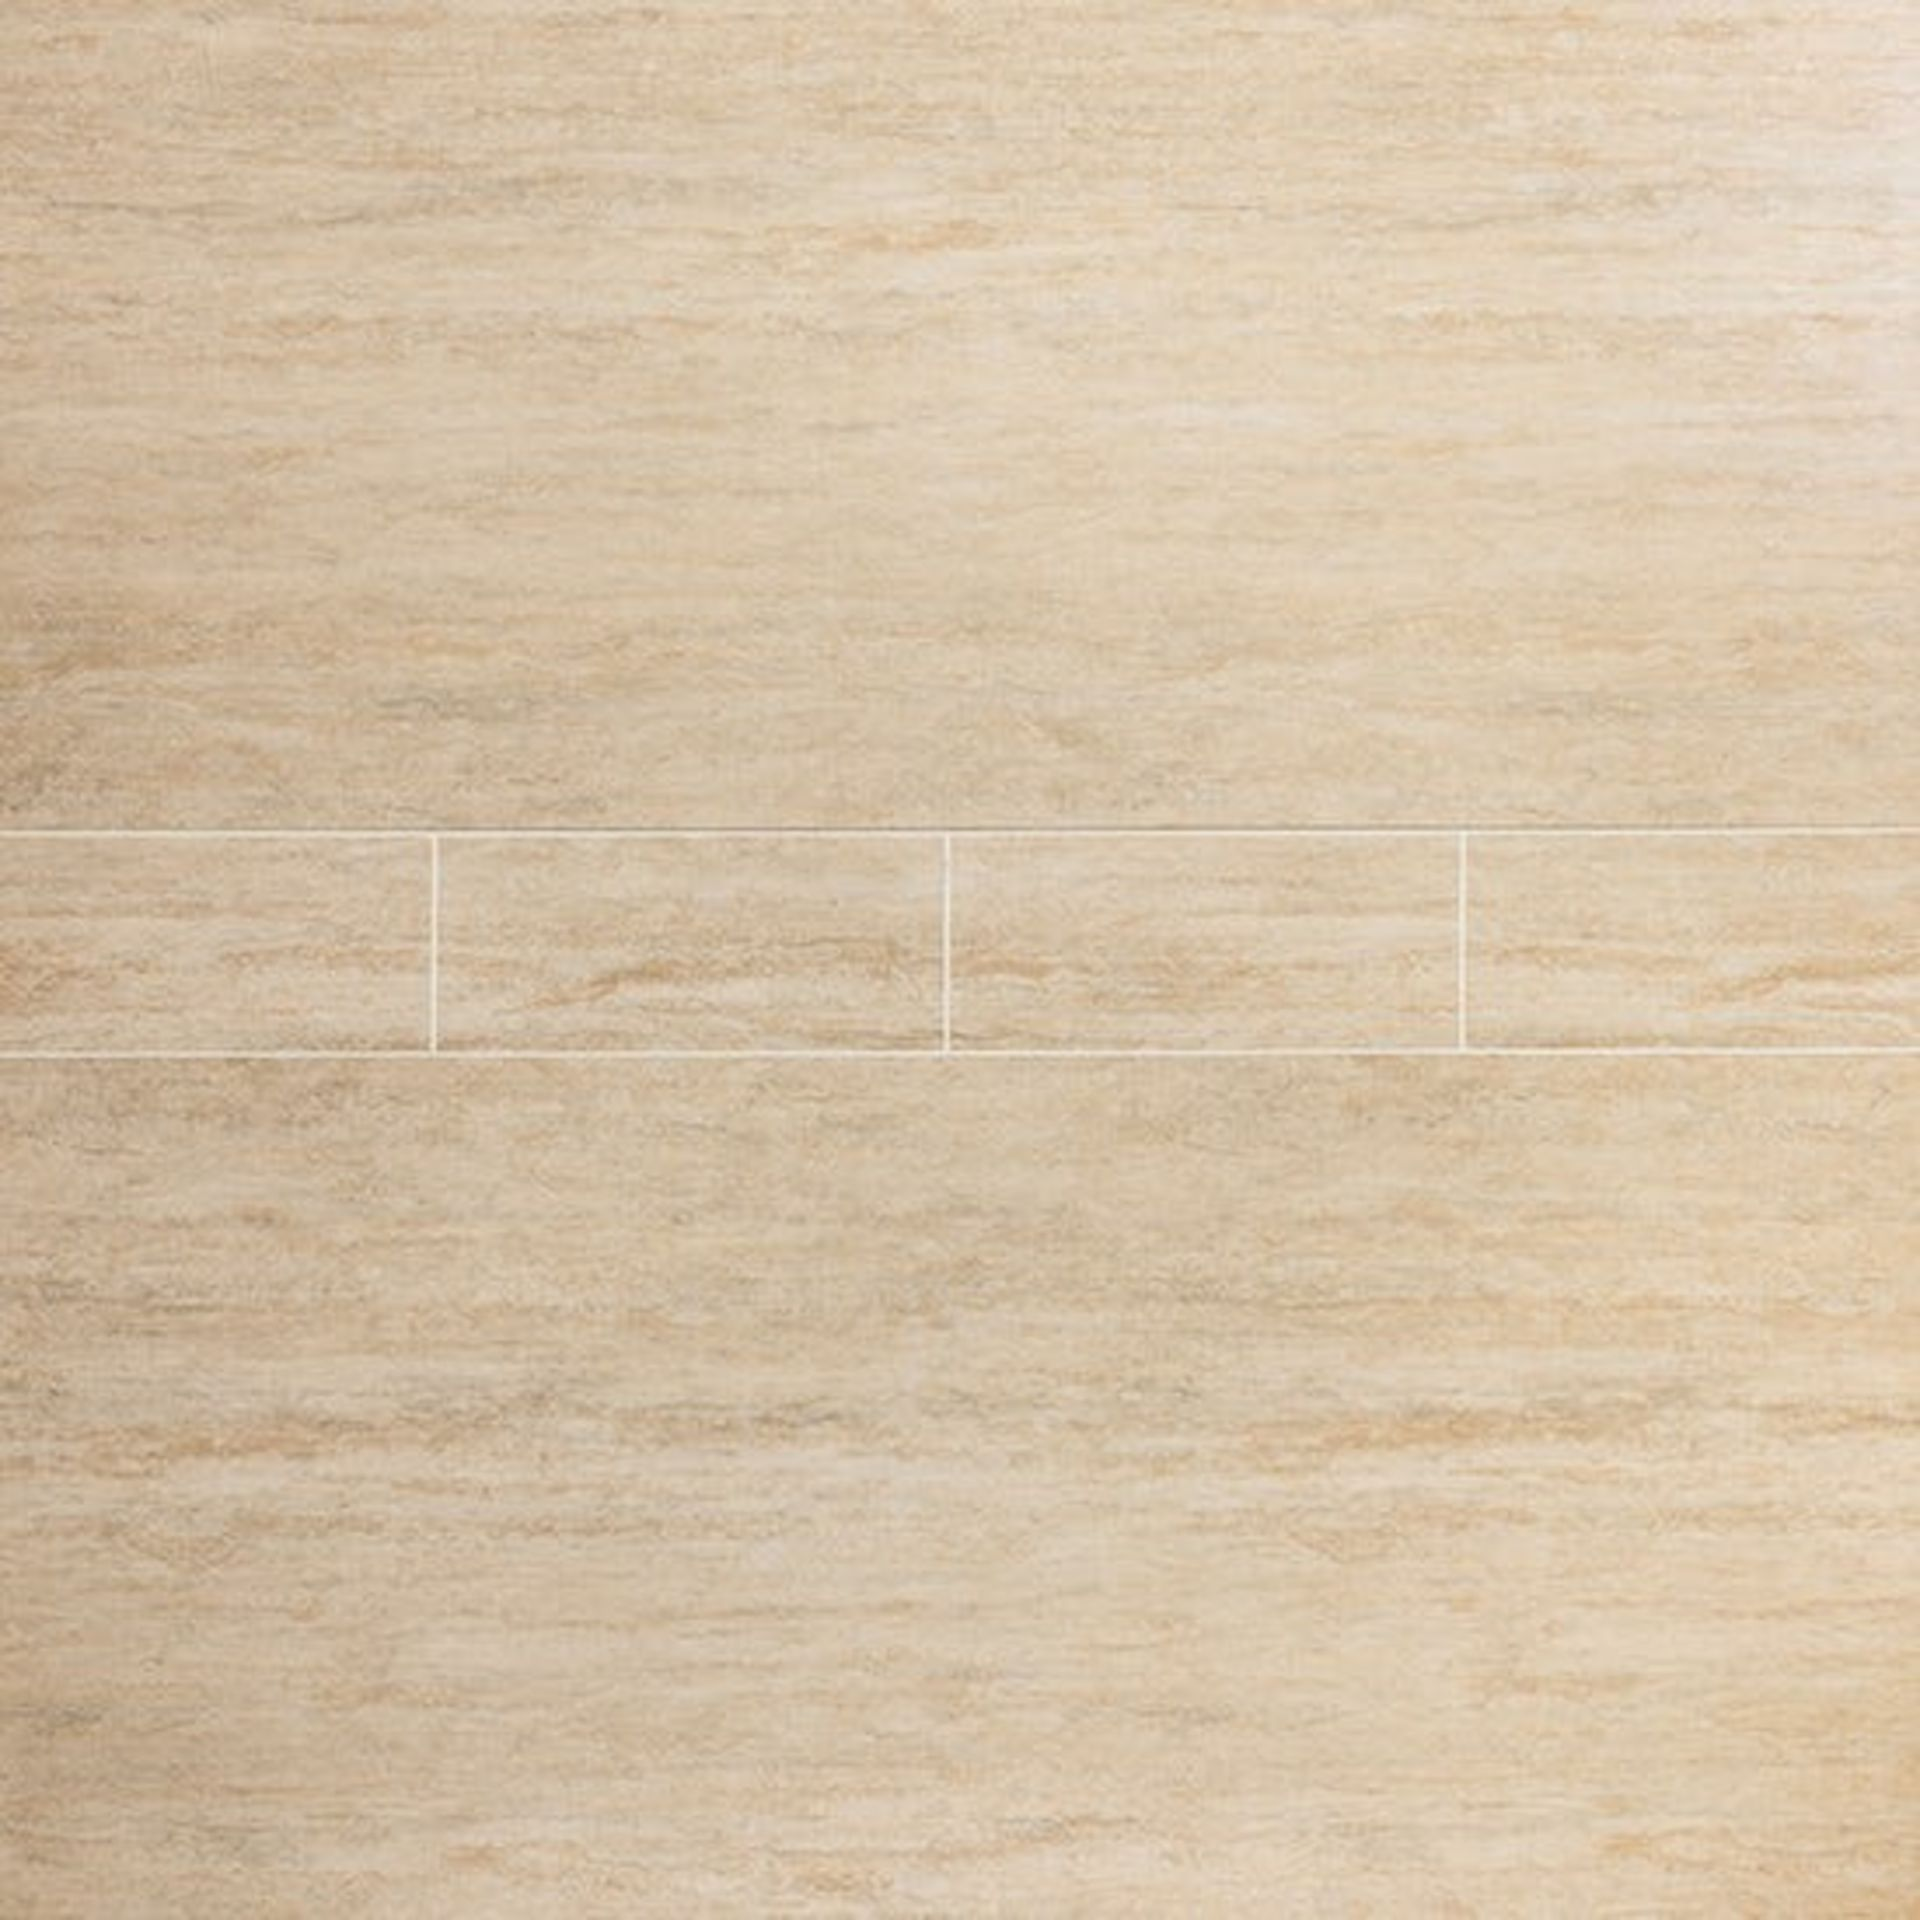 12x Splash Panel 2 sided shower wall kit in Sandstone, new and boxed, each kit contains 2 - Image 2 of 3